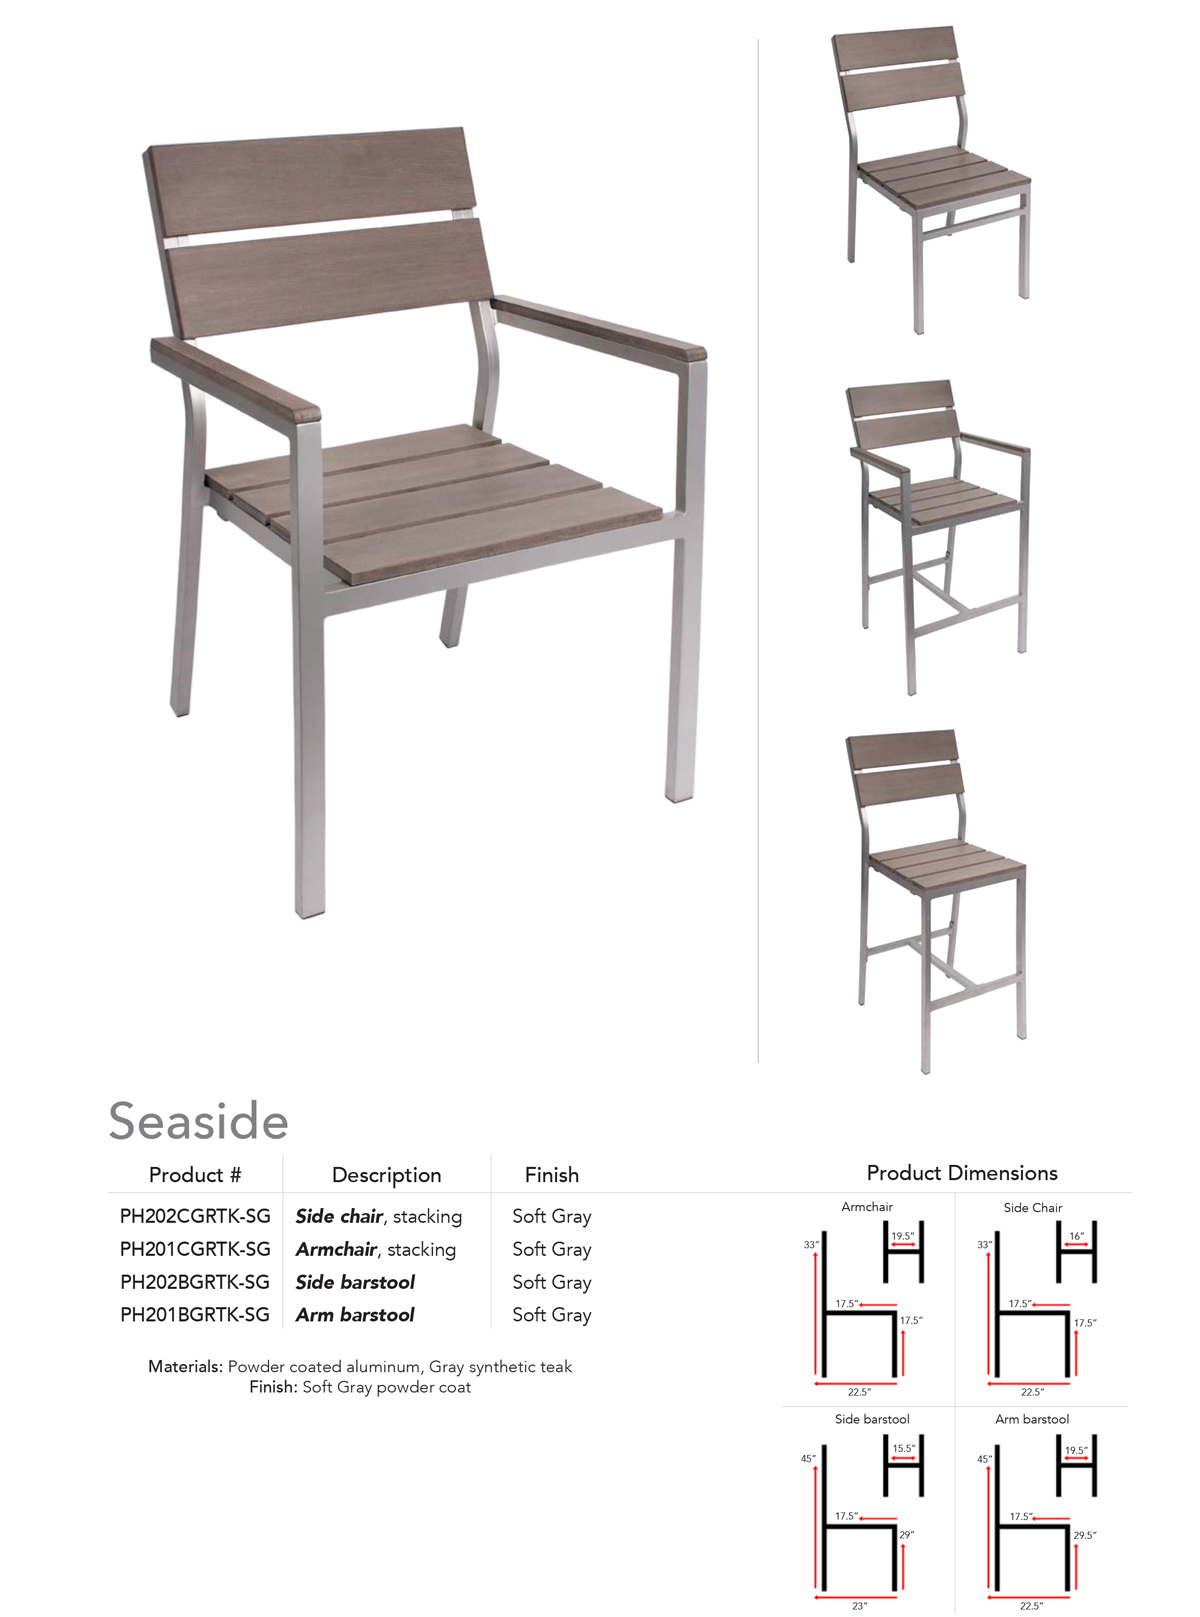 BFM Seating Seaside synthetic teak gray